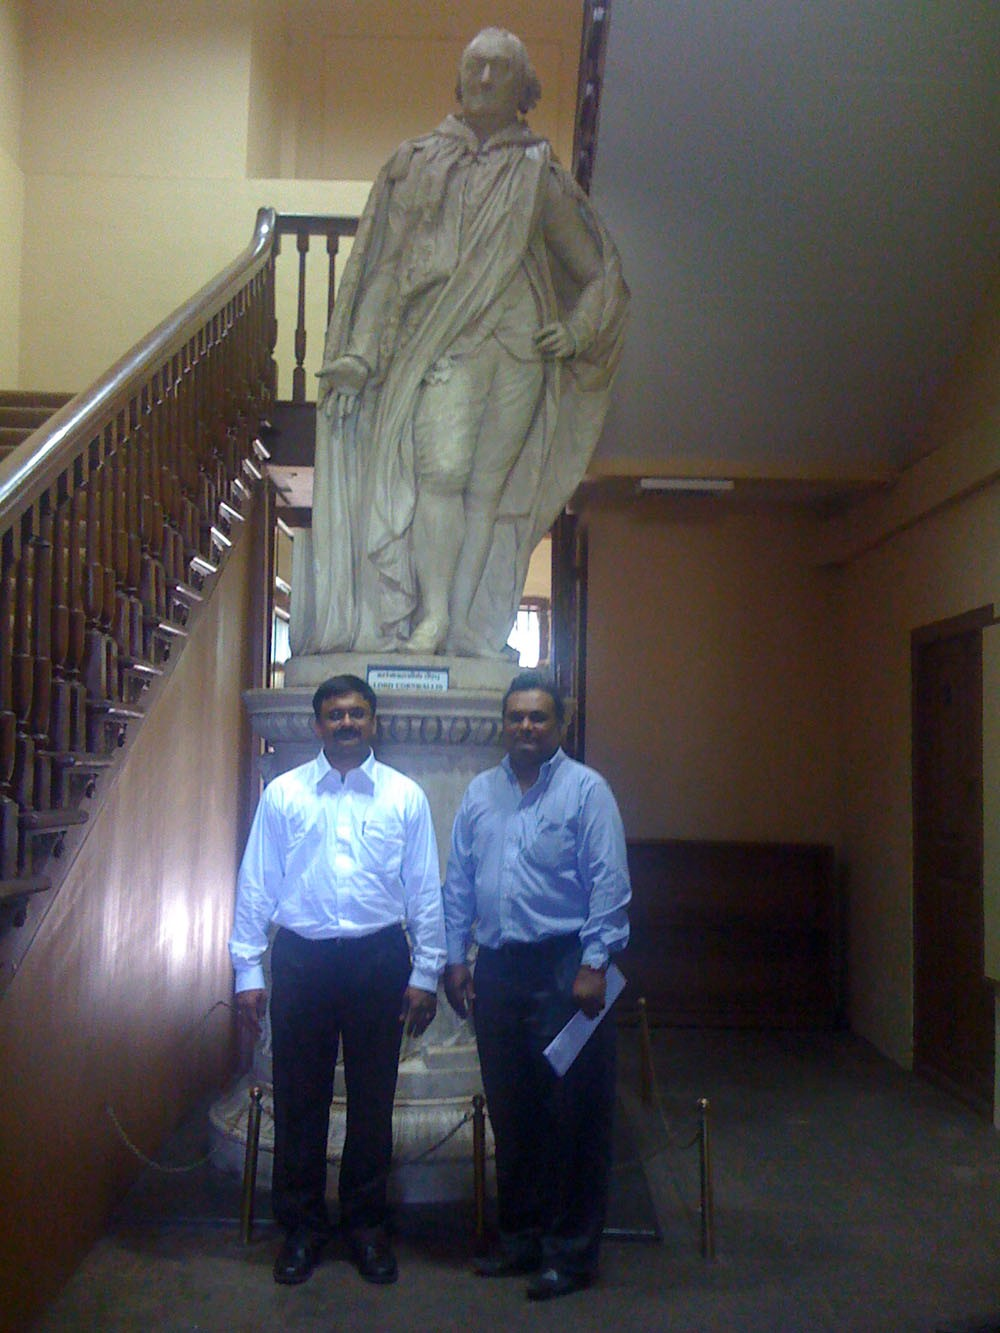 Venkatarangan and Maniam in front of Lord Cornwallis Statue in Fort Museum Chennai